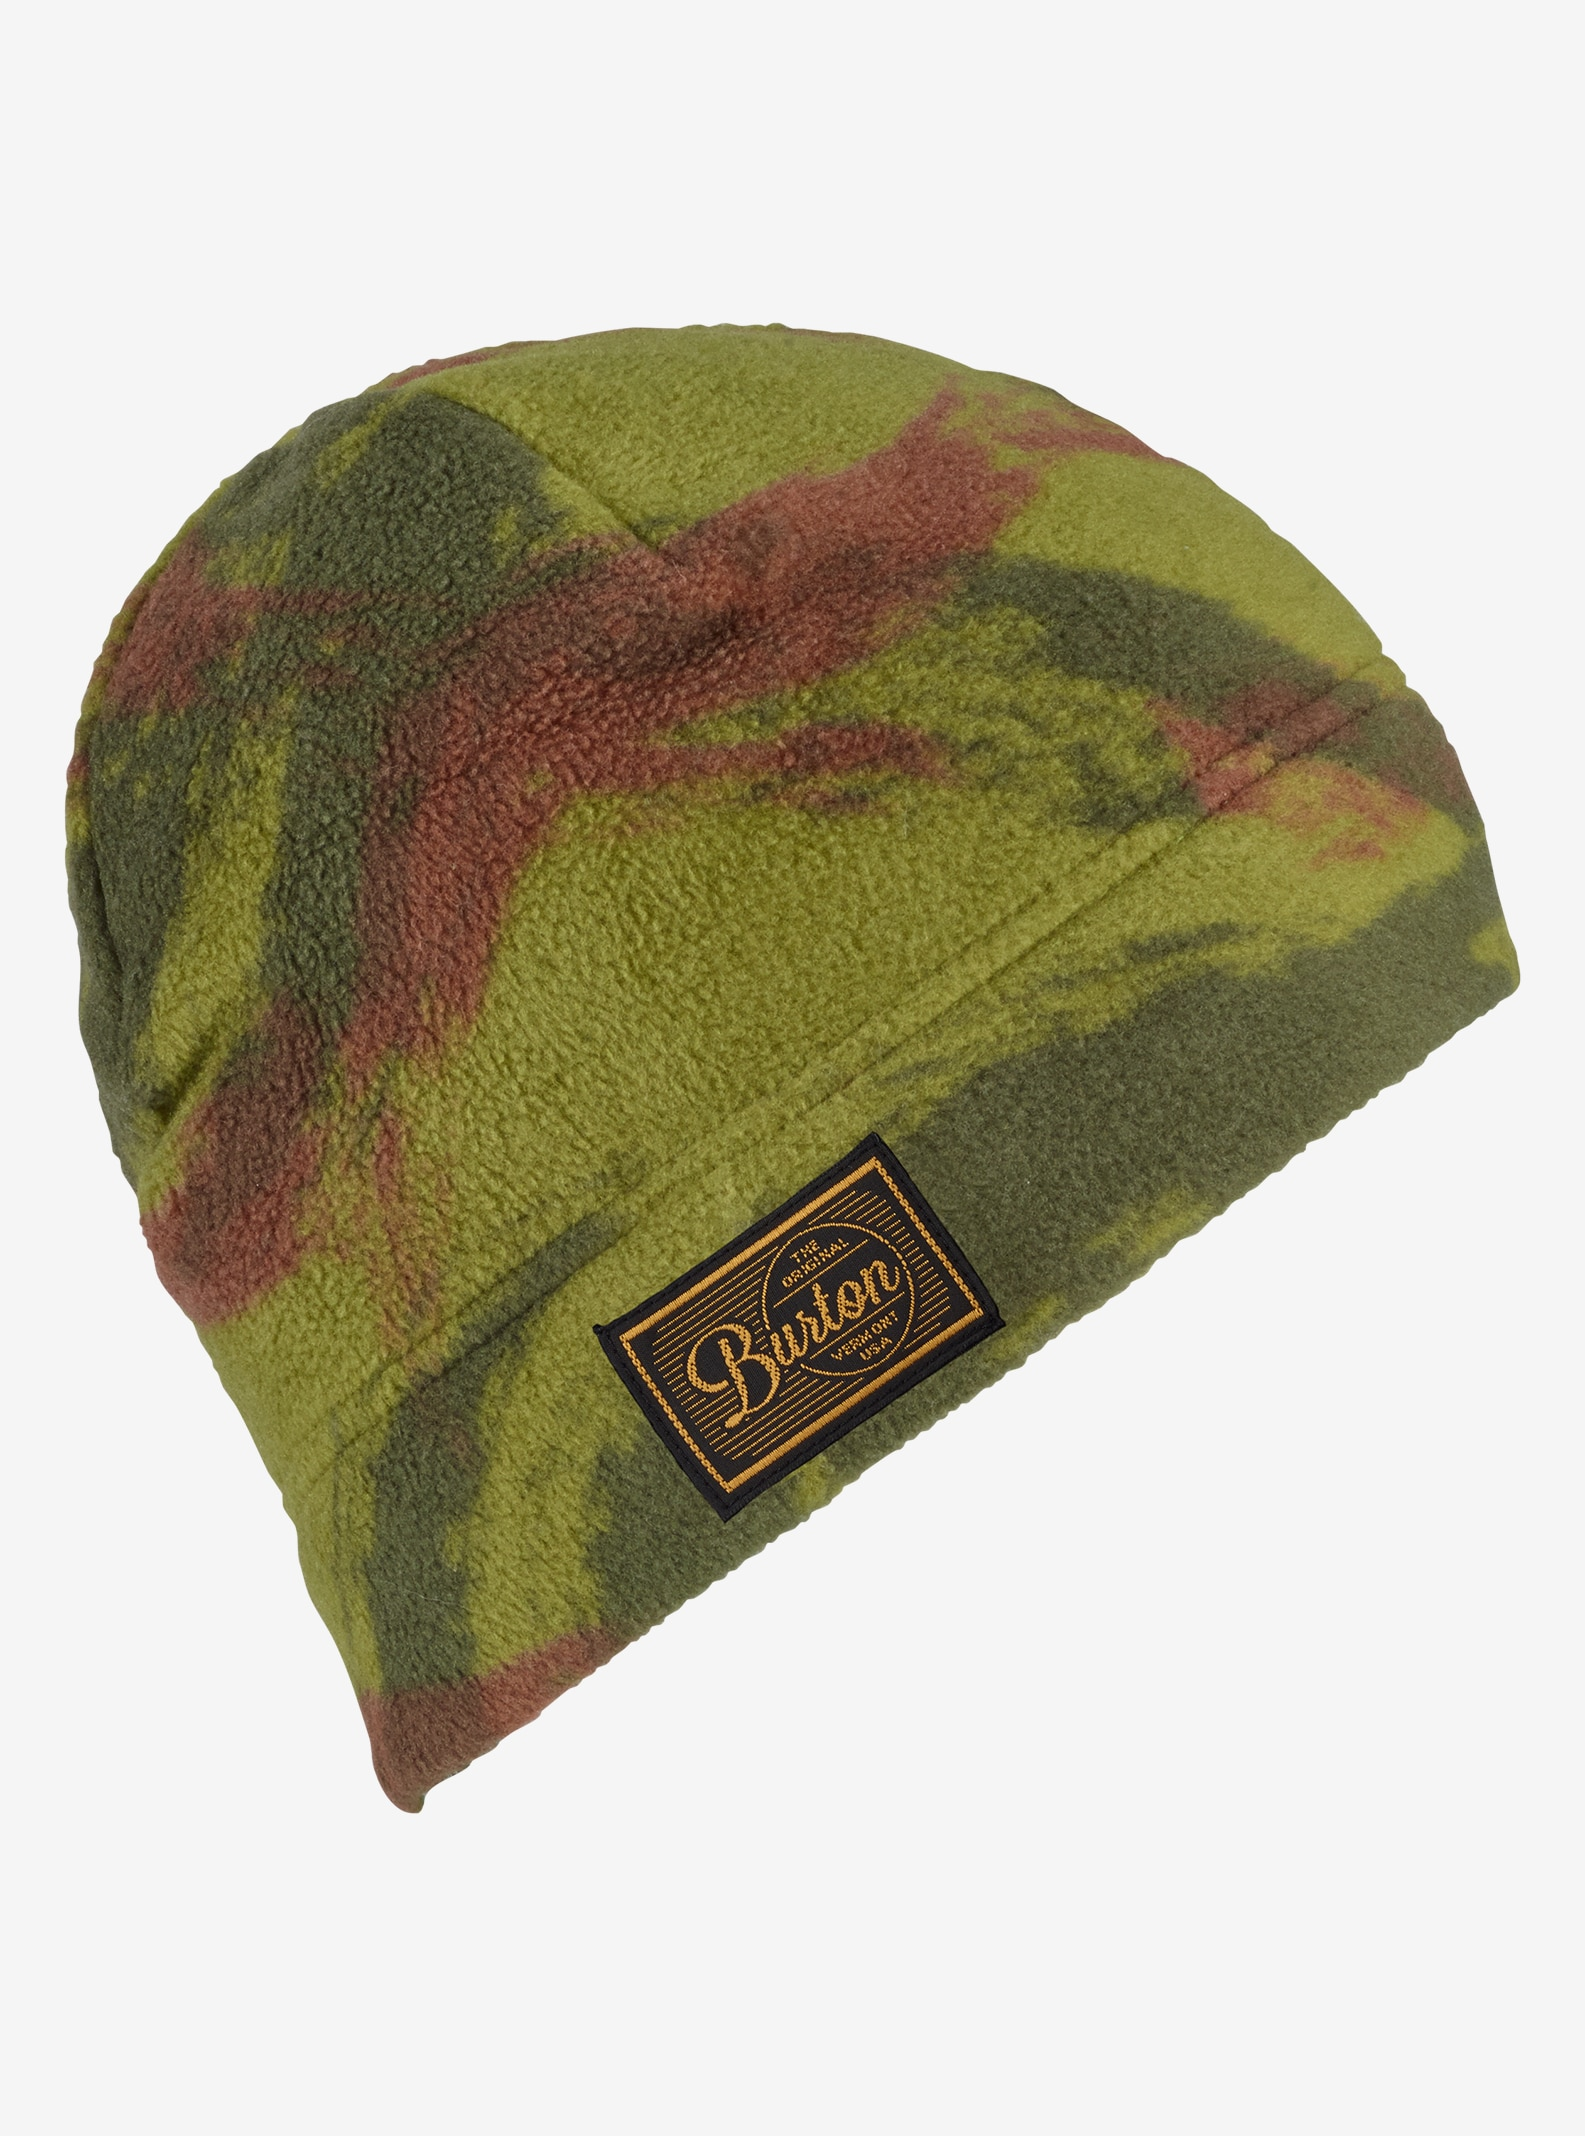 Burton Ember Fleece Beanie shown in Brush Camo